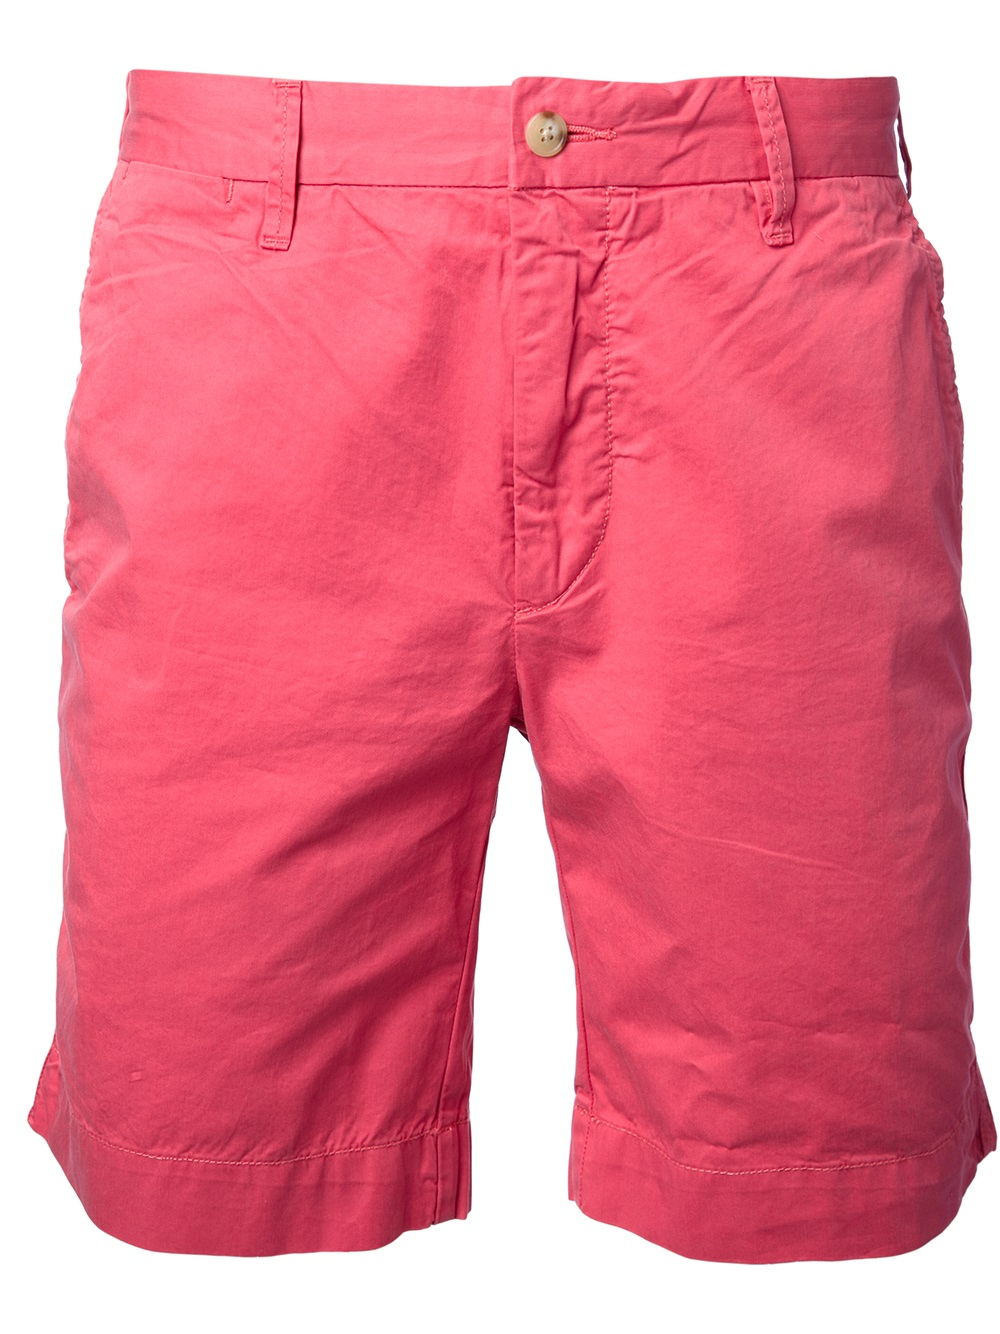 42e108027ee82 ... low cost lyst polo ralph lauren classic bermuda shorts in pink for men  cedf1 b973f